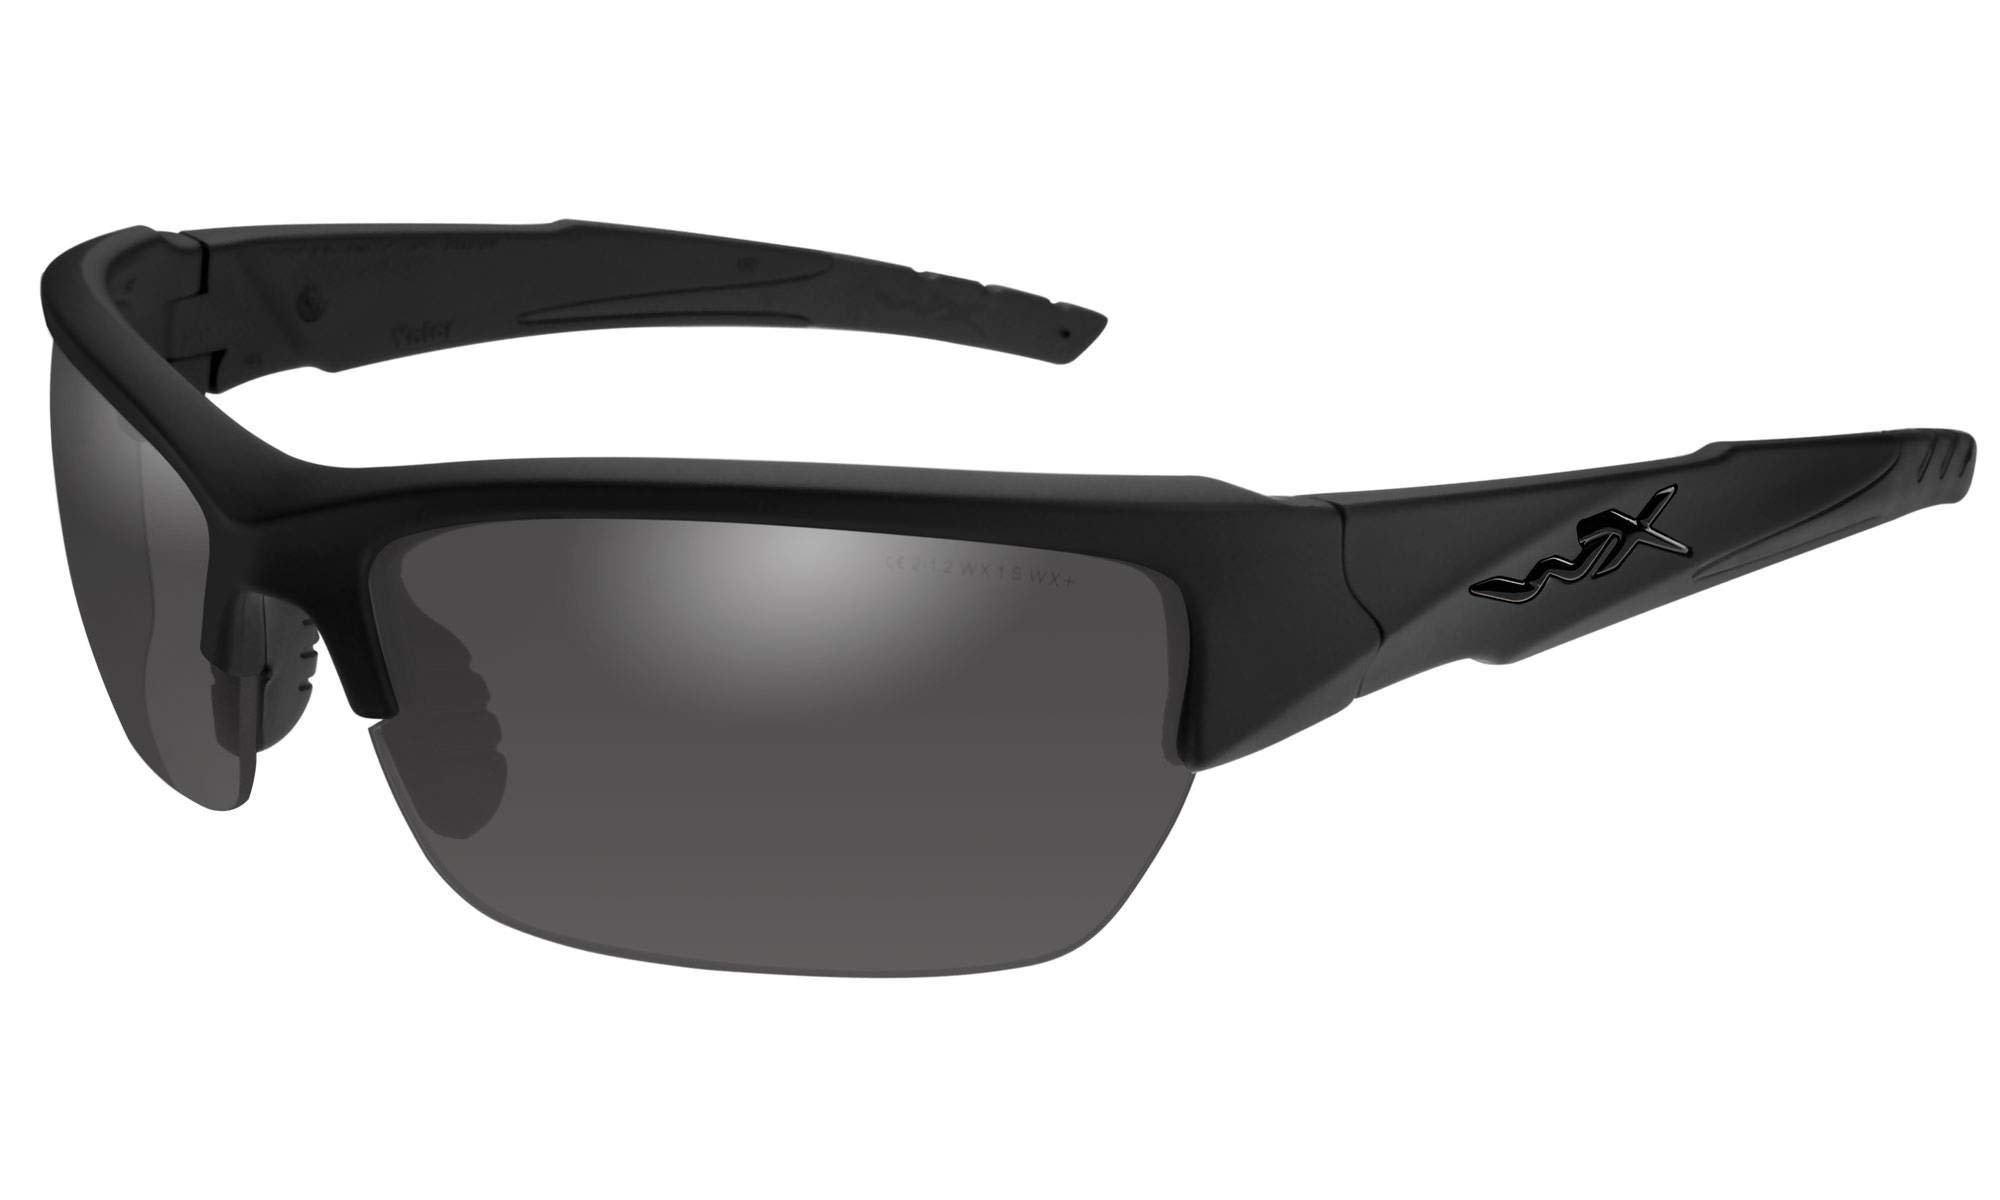 Wiley X Valor Sunglasses (Smoke Grey Lens, Matte Black Frame) by Wiley X